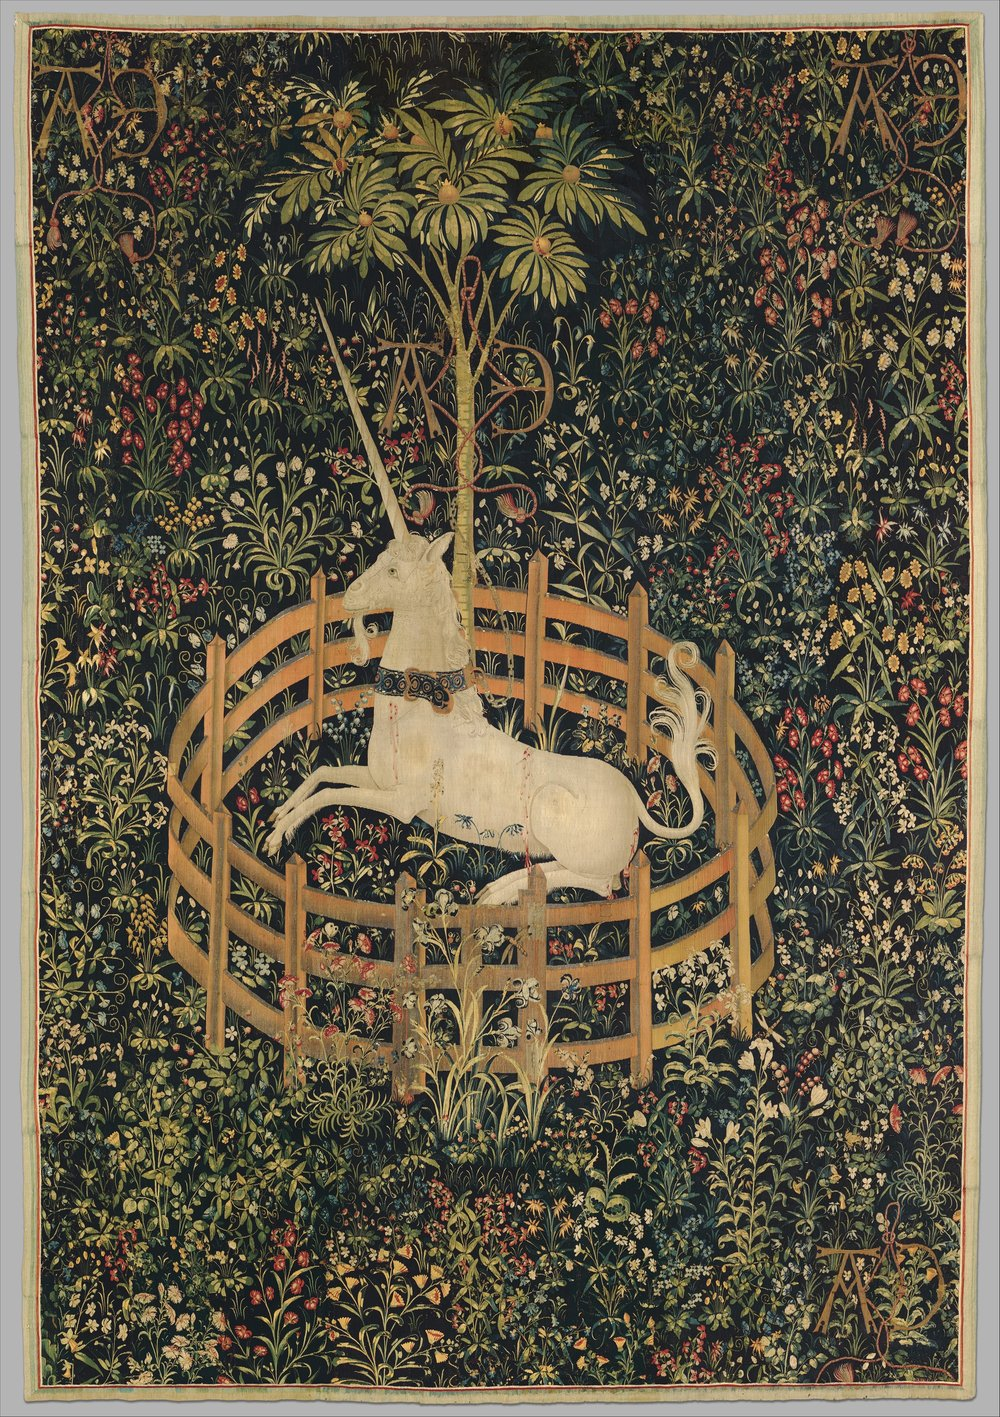 Looking for your Unicorn? - The Unicorn in Captivity (from the Unicorn Tapestries)1495–1505Culture: South NetherlandishMedium: Wool warp with wool, silk, silver, and gilt weftsGift of John D. Rockefeller Jr., 1937On view at The Met Cloisters in Gallery 17The seven individual hangings known as